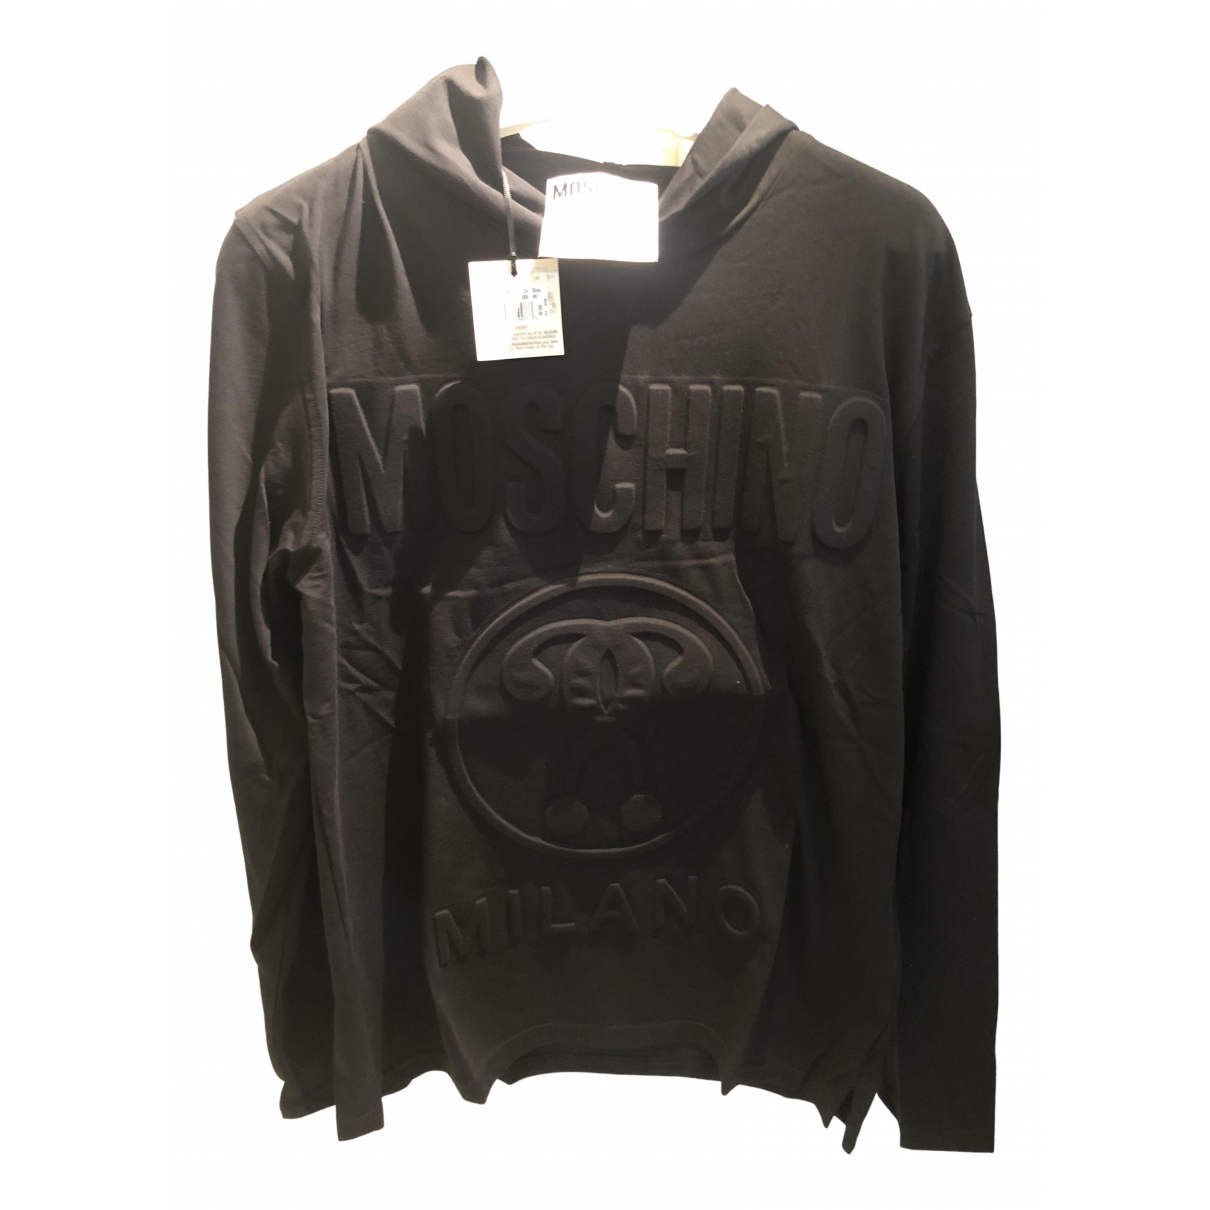 Moschino N Black Cotton Knitwear & Sweatshirts for Men 48 IT